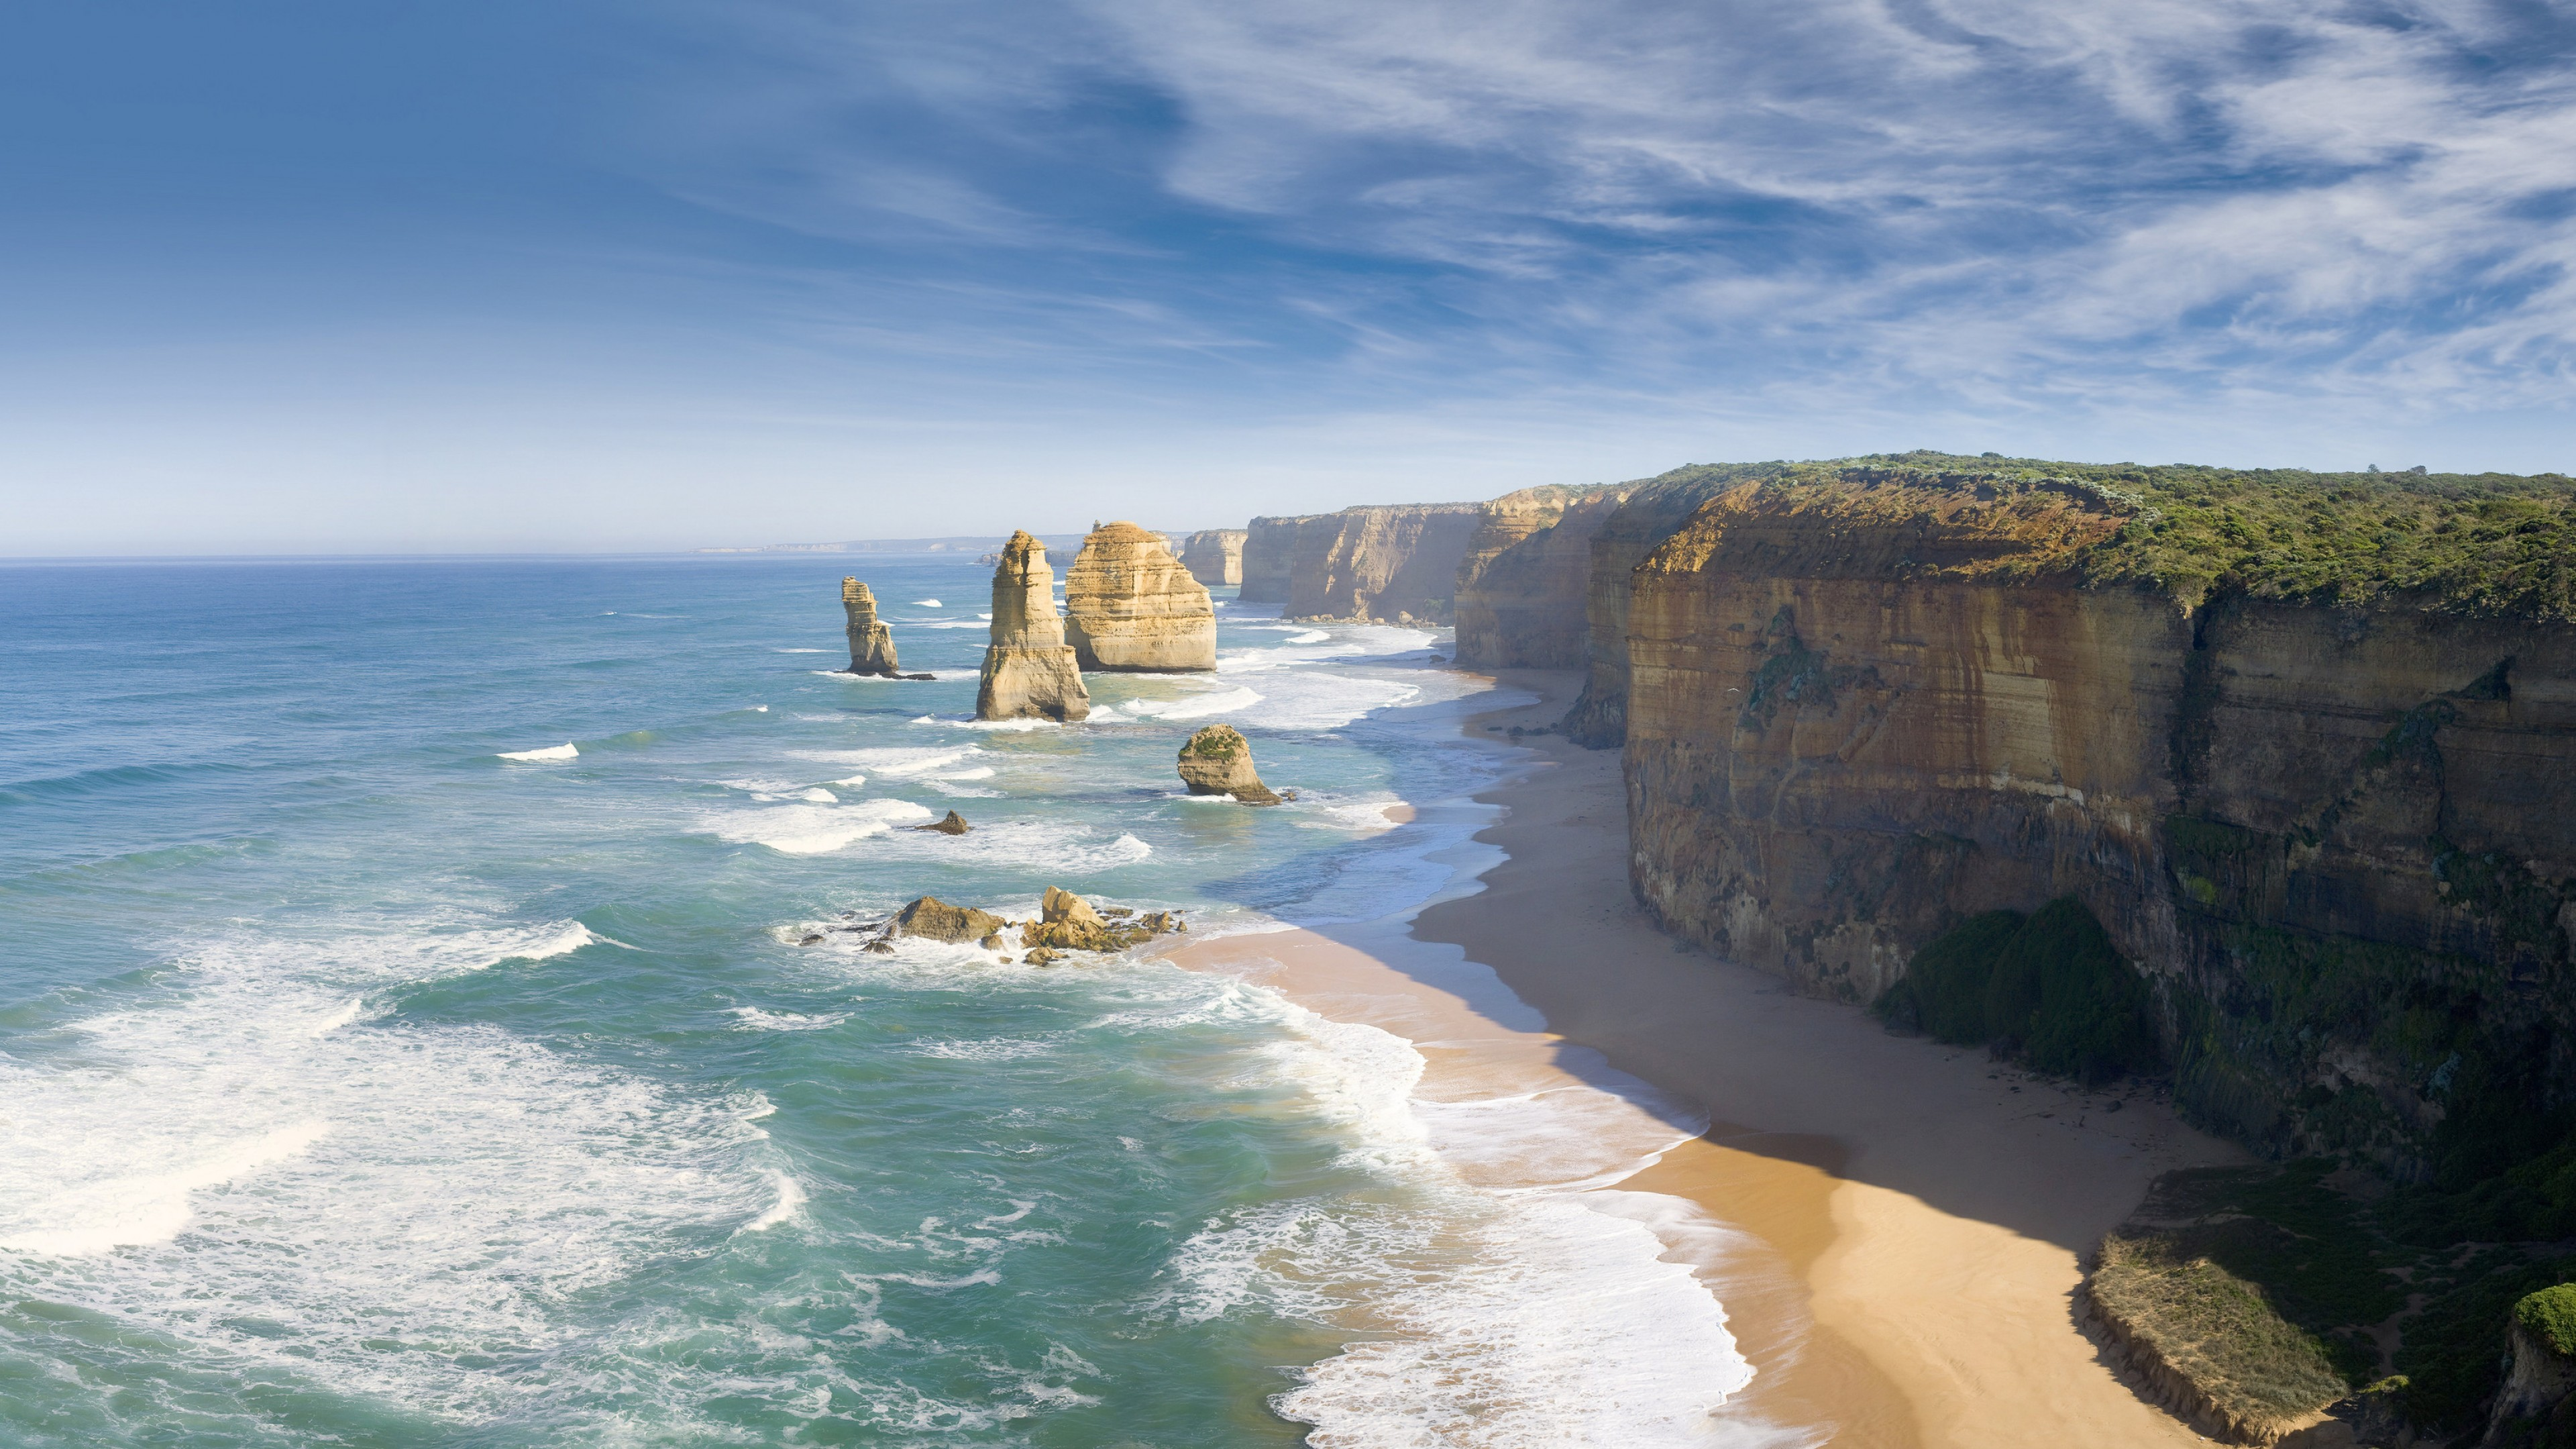 Wallpaper Melbourne 4k Hd Wallpaper Australia Best Beaches In The World Great Ocean Road Sea Ocean World S Best Diving Sites Nature 3871